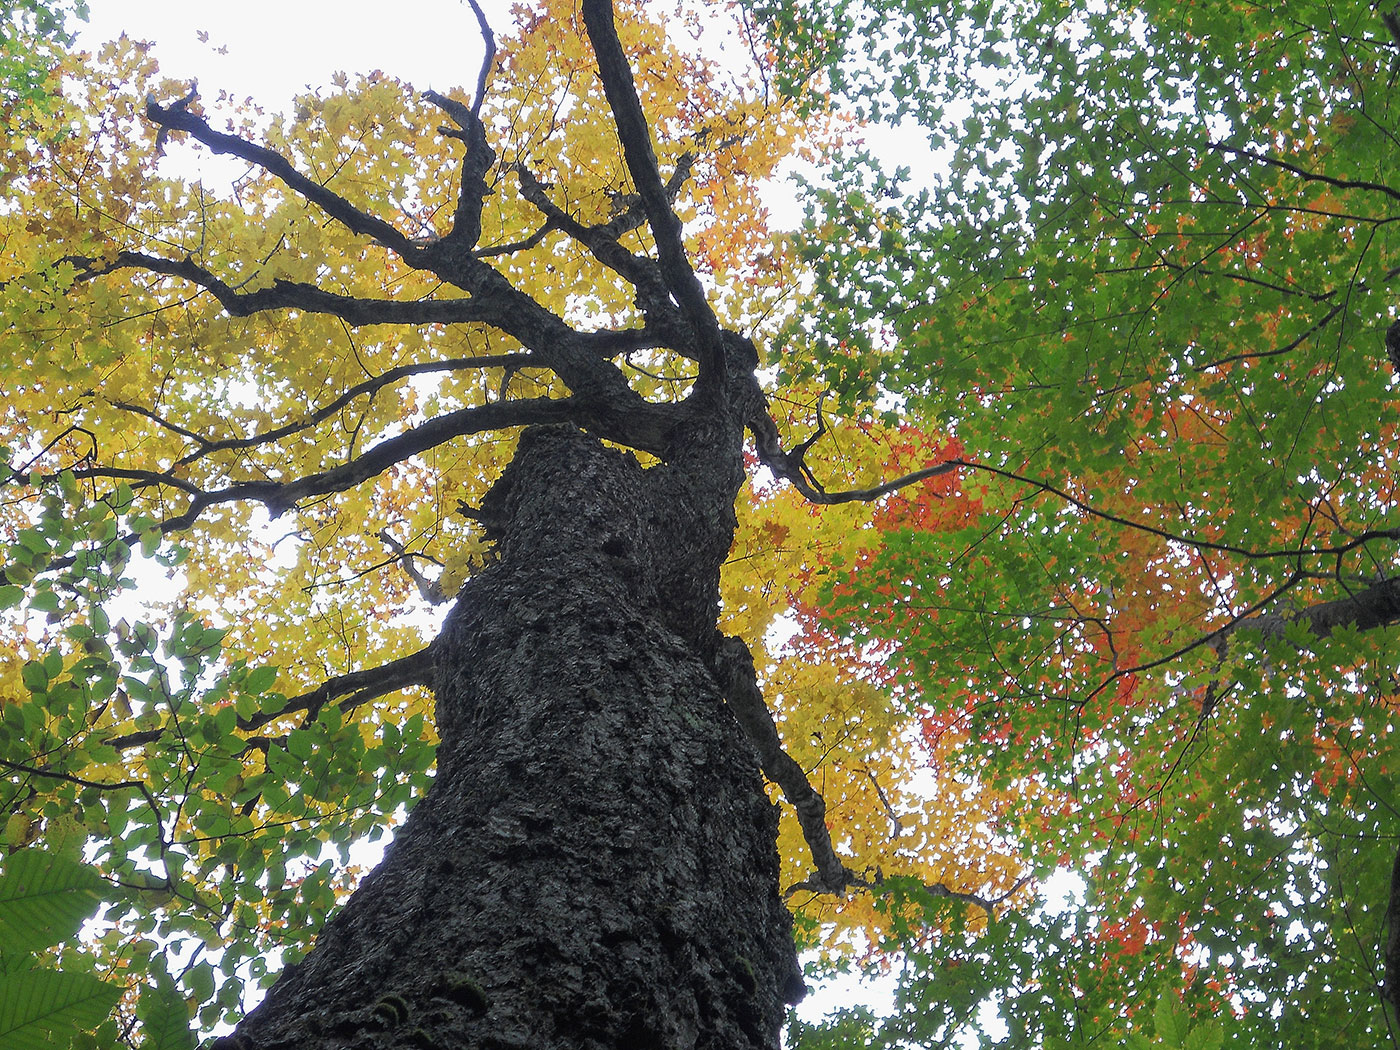 view looking up at maple tree